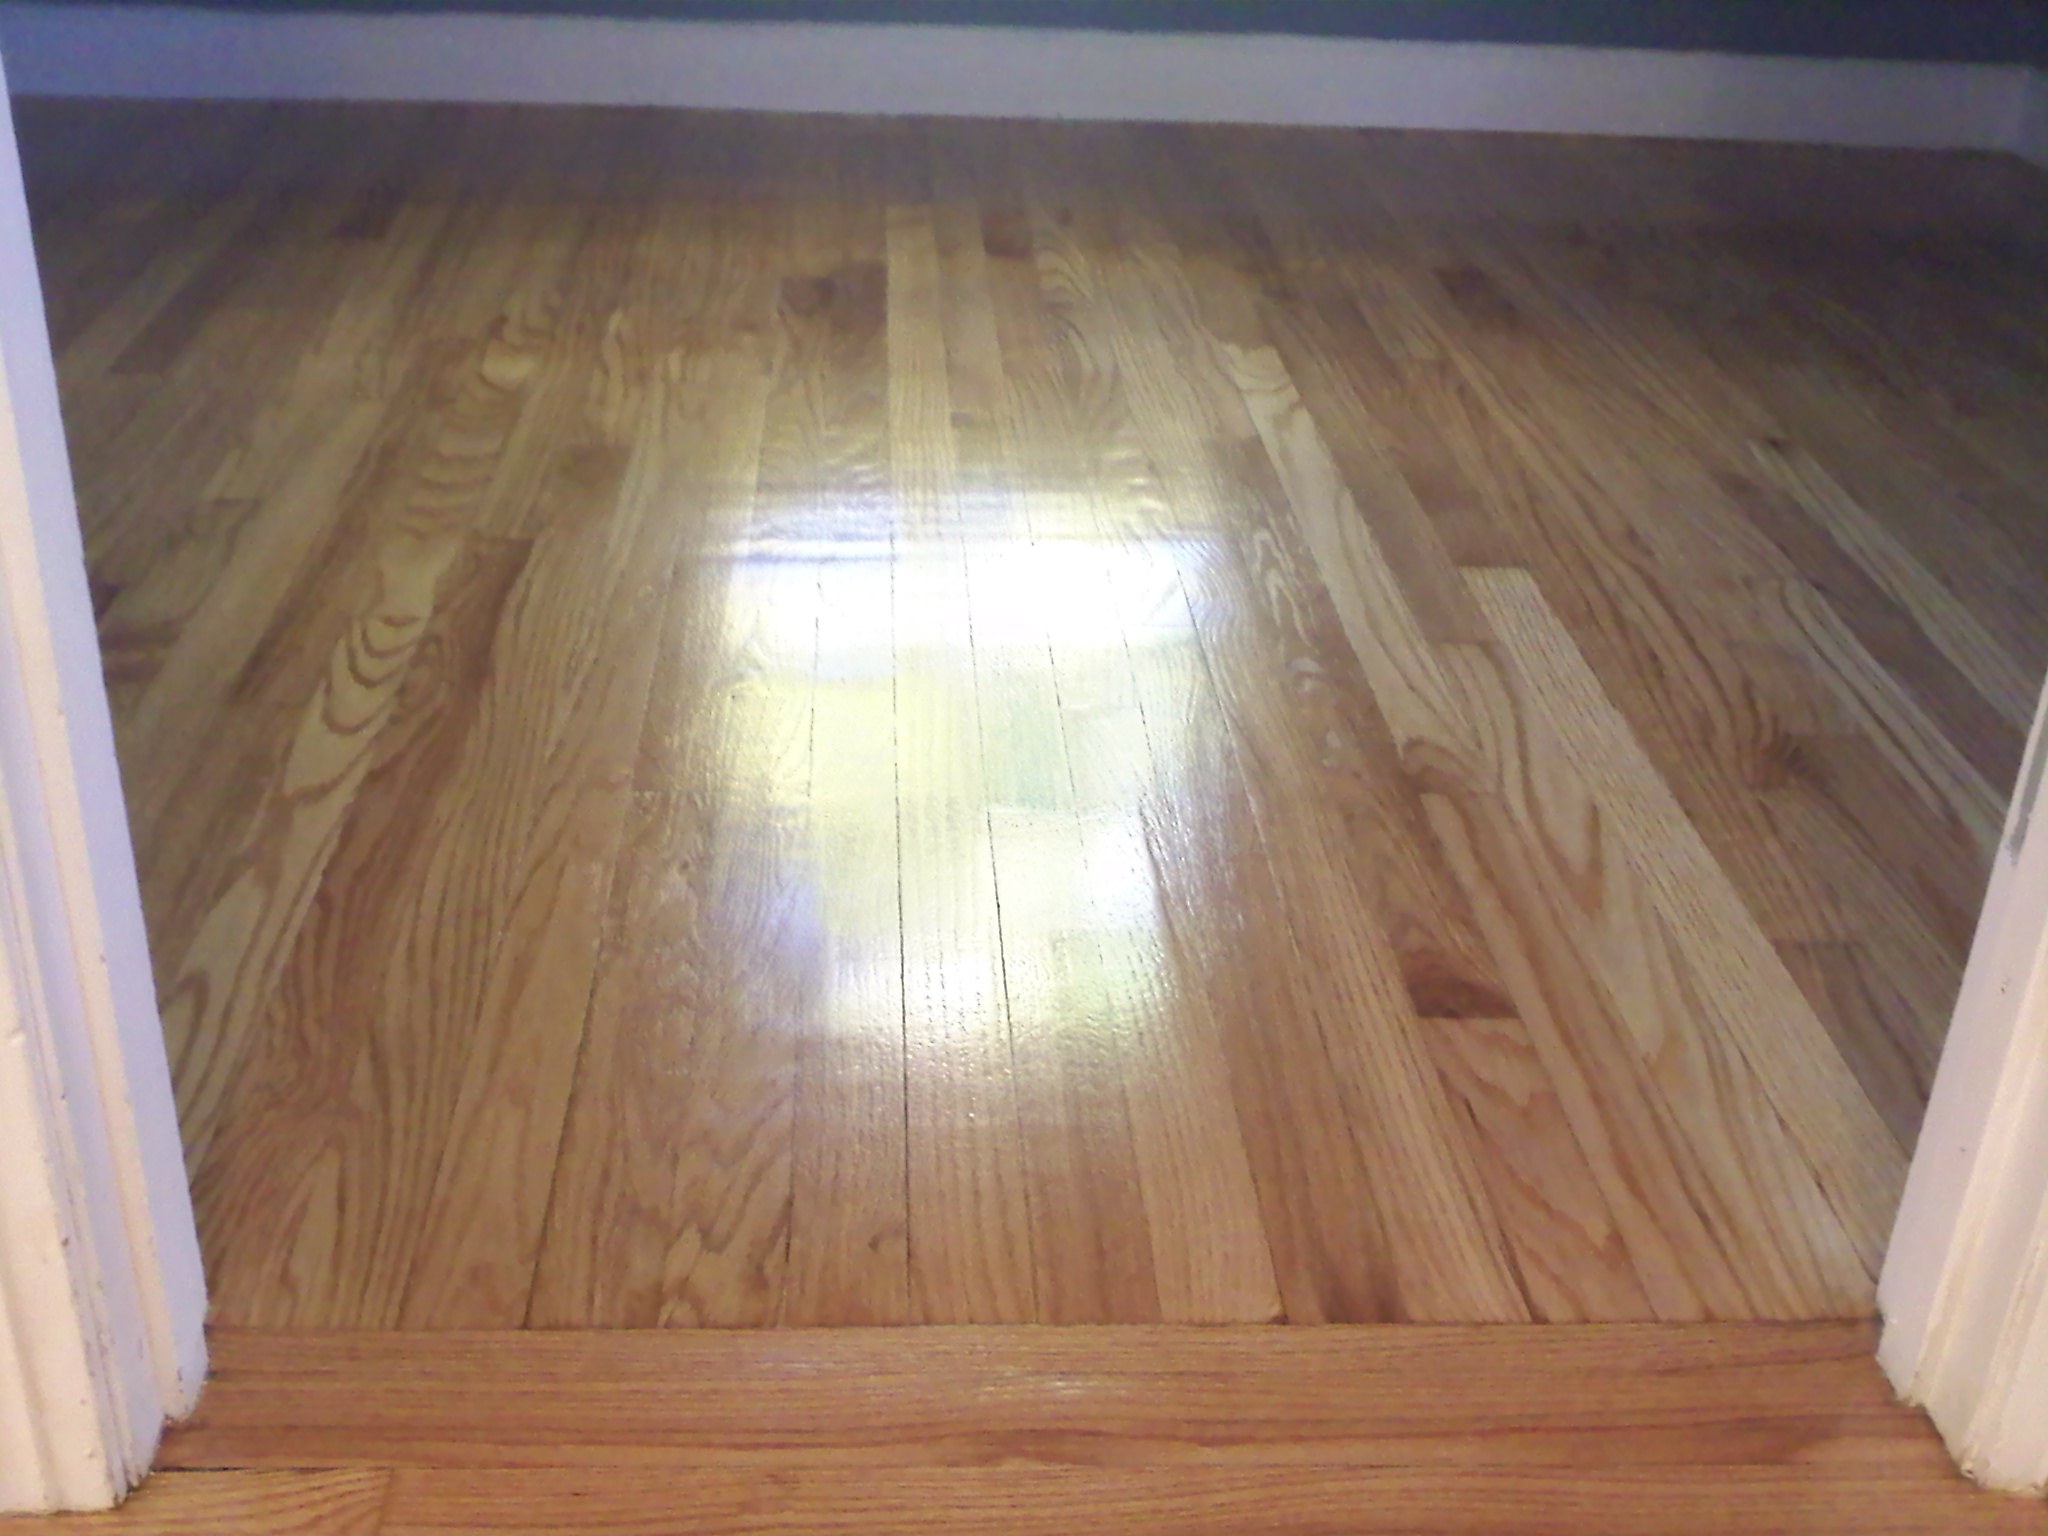 Refinished wood floors wavy hardwood floors phone refinishing